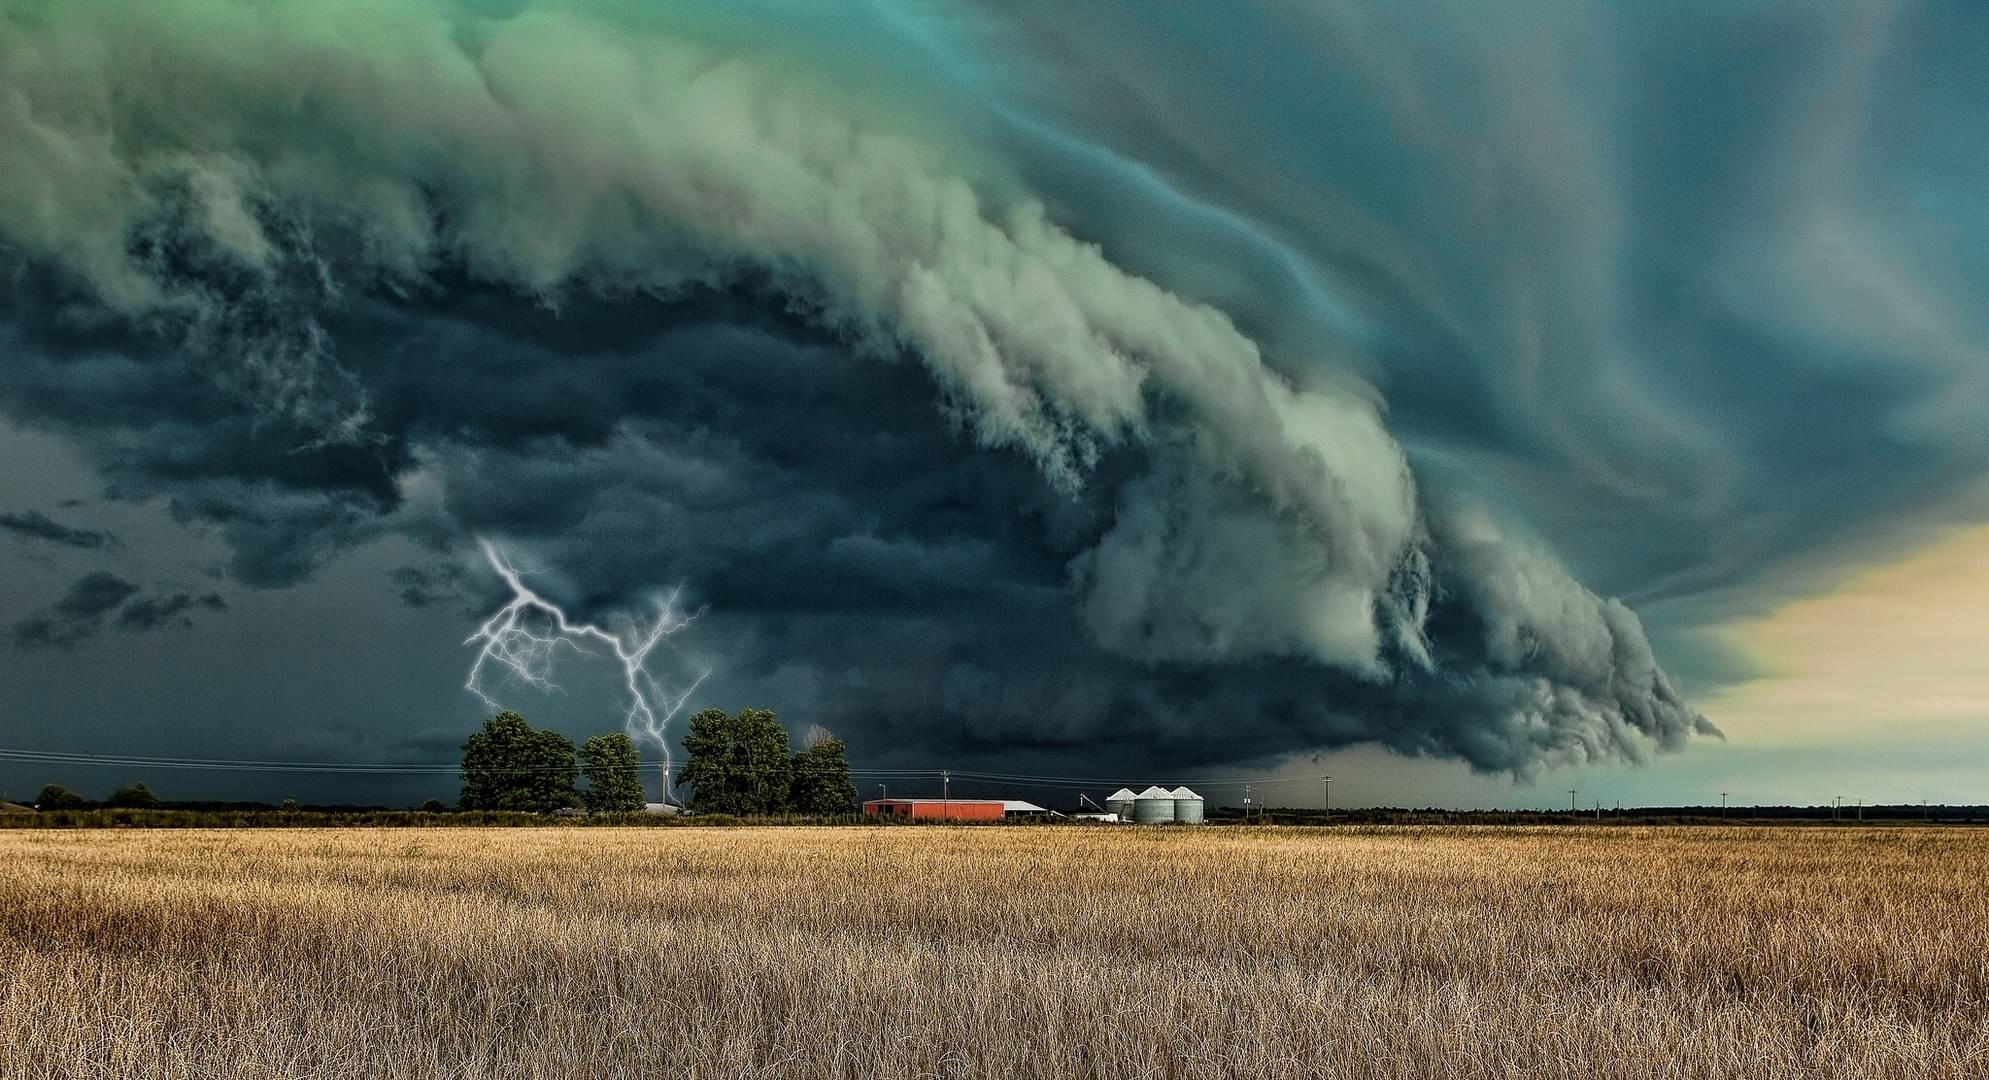 Res: 1989x1080, Landscape, lighting, storm cloud, July wallpapers and images .